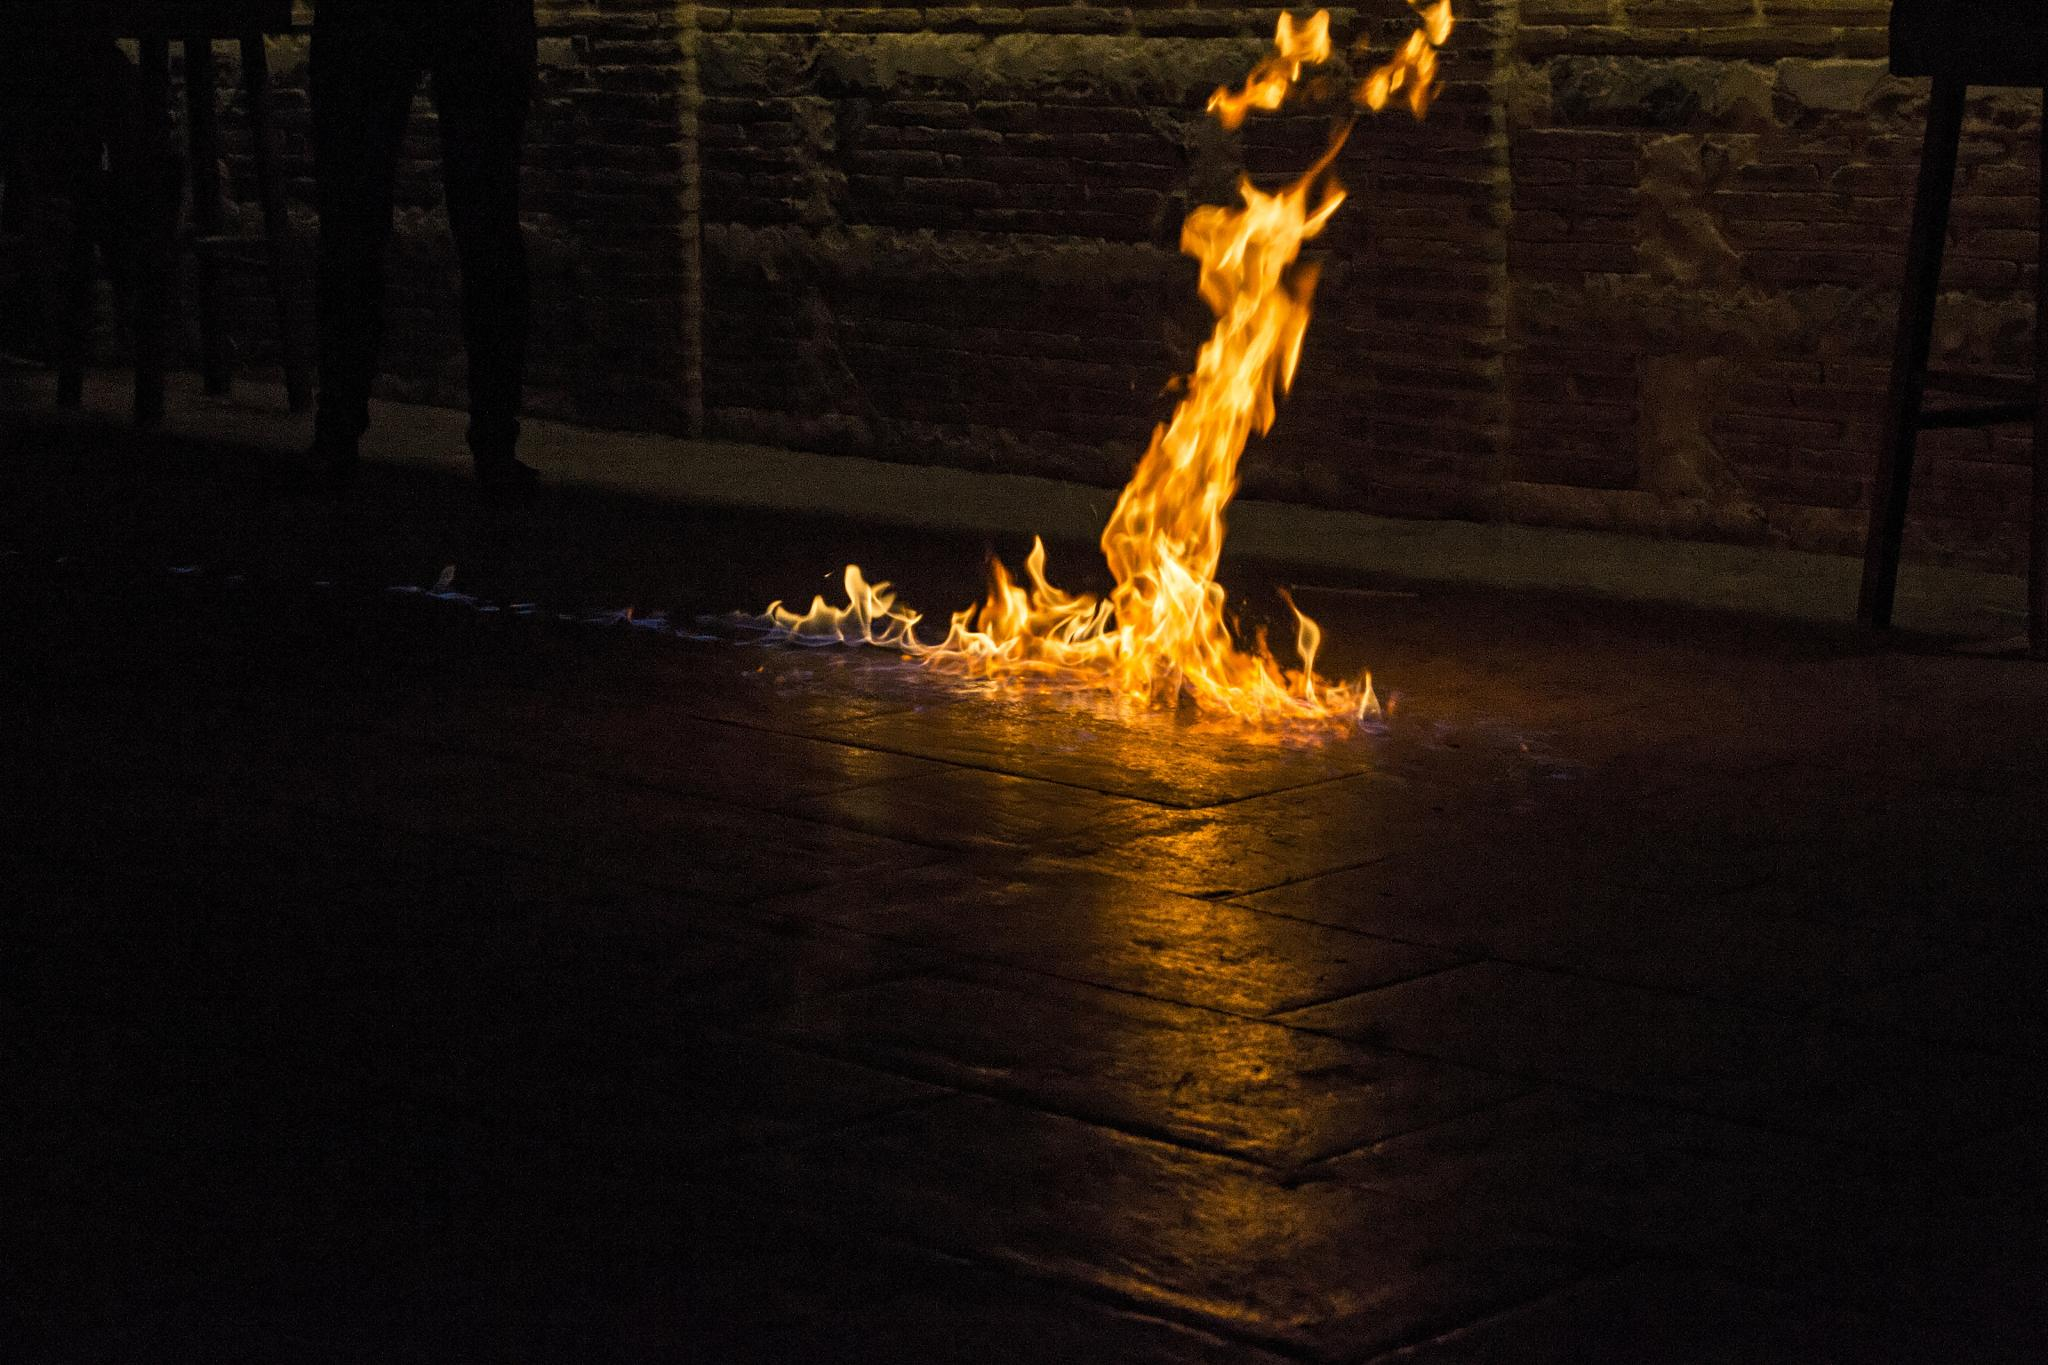 Flame on the floor by howard.rollinson